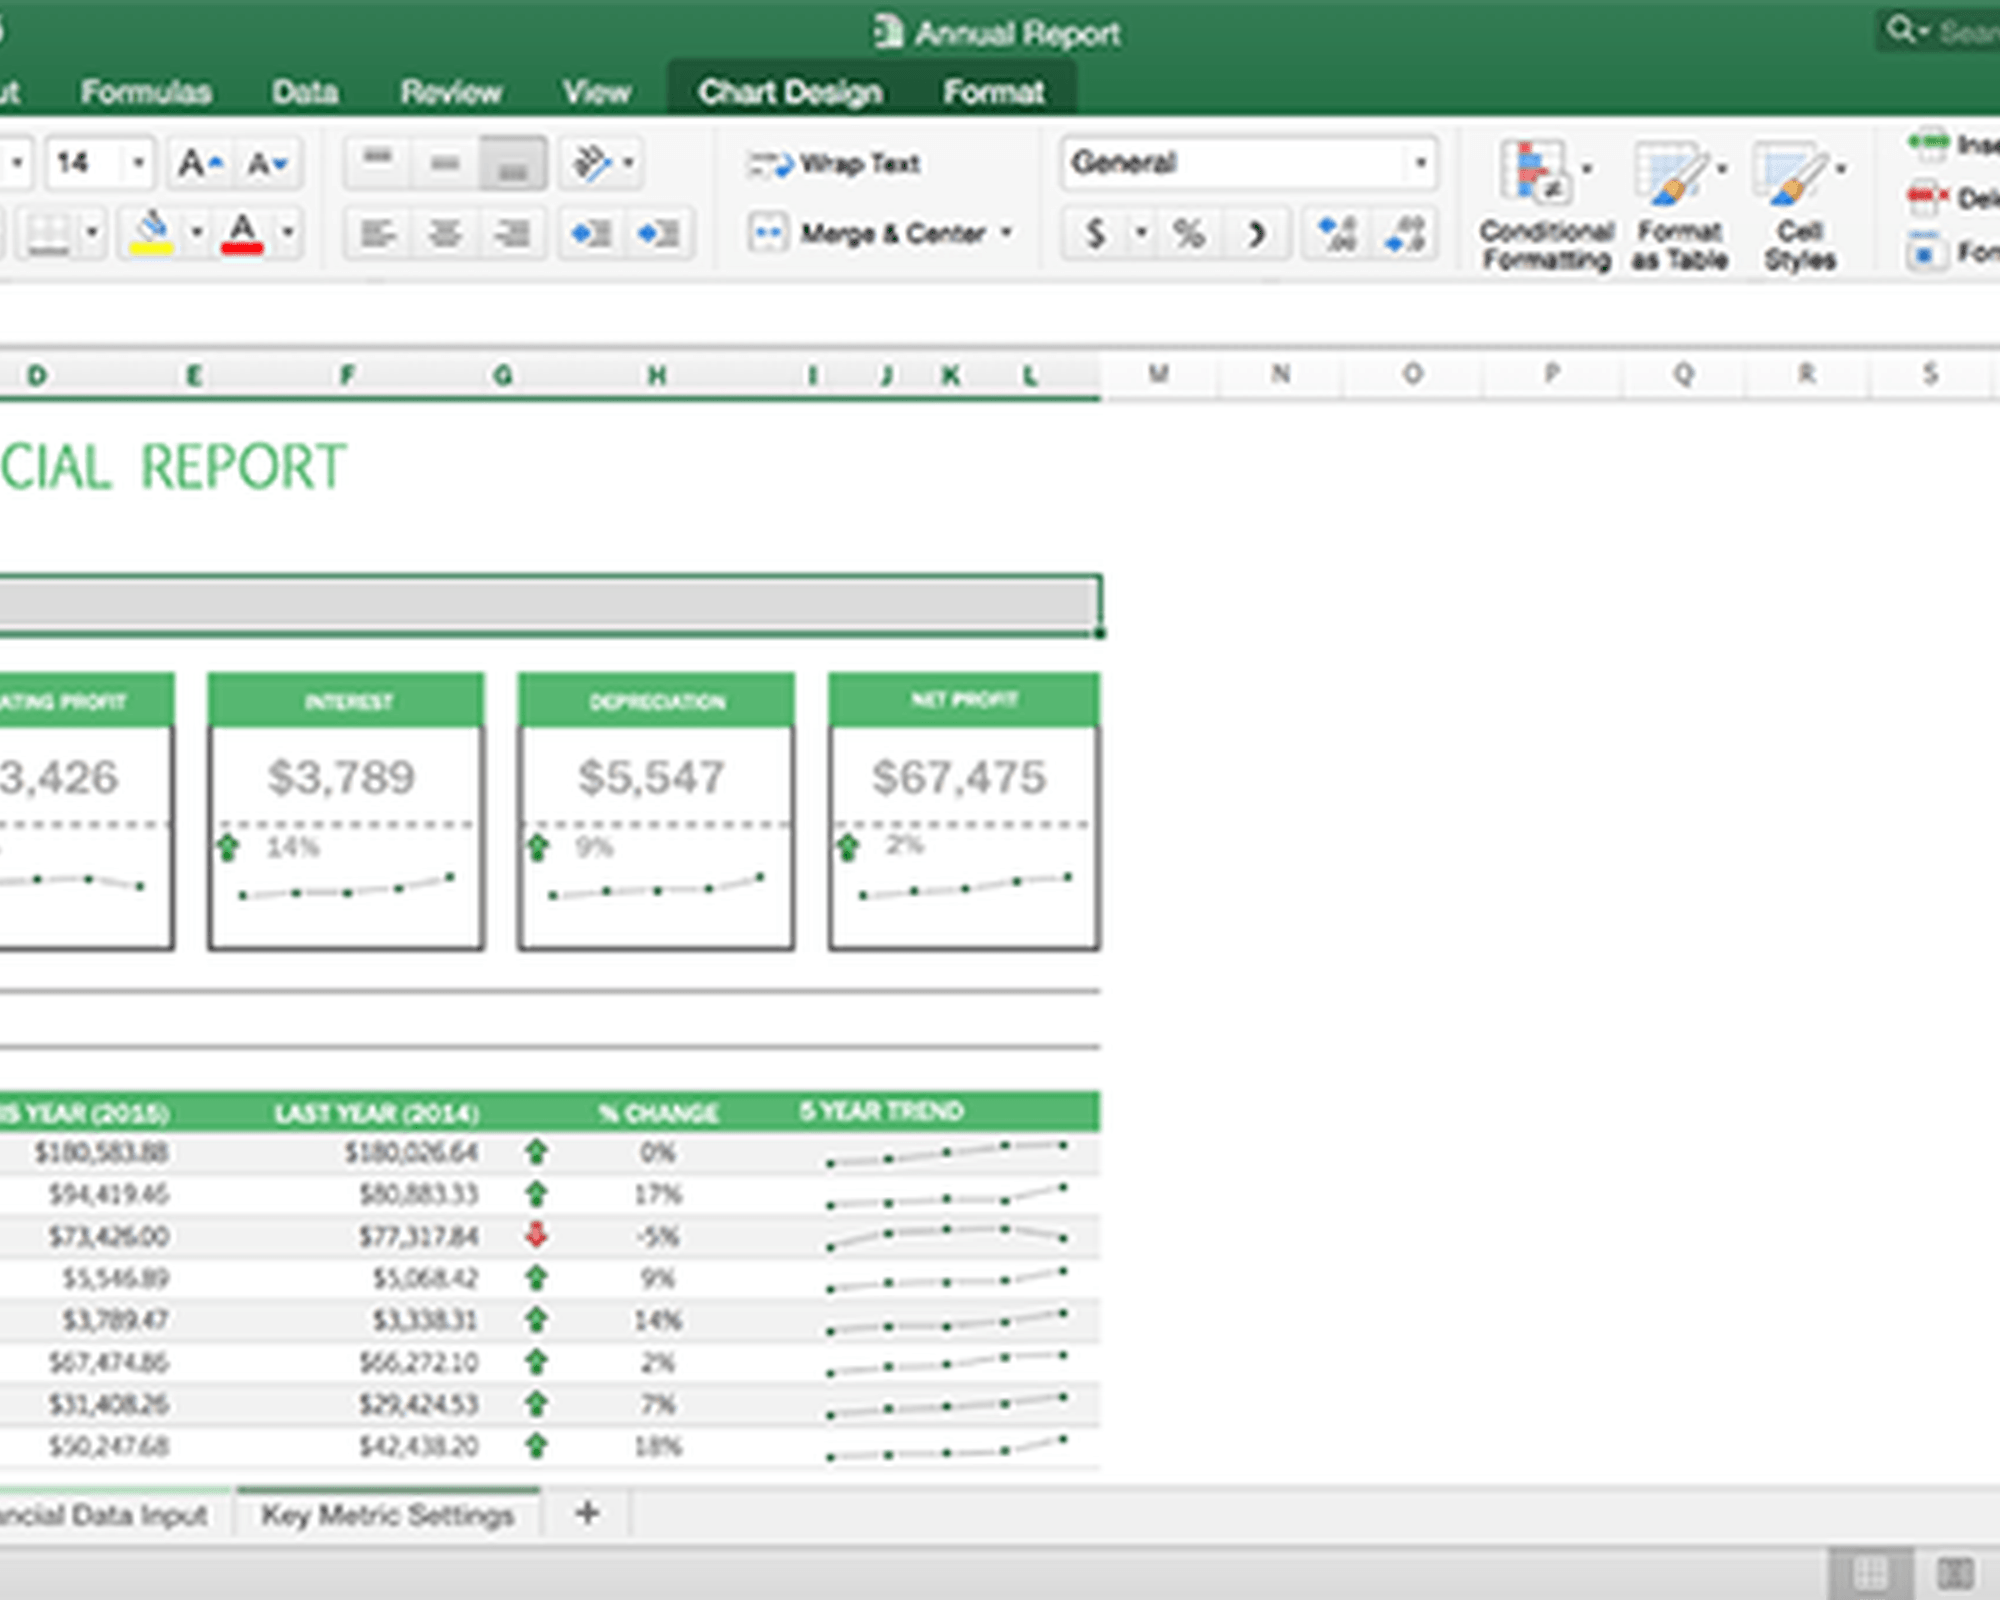 Excel Spreadsheet To Calculate Interest